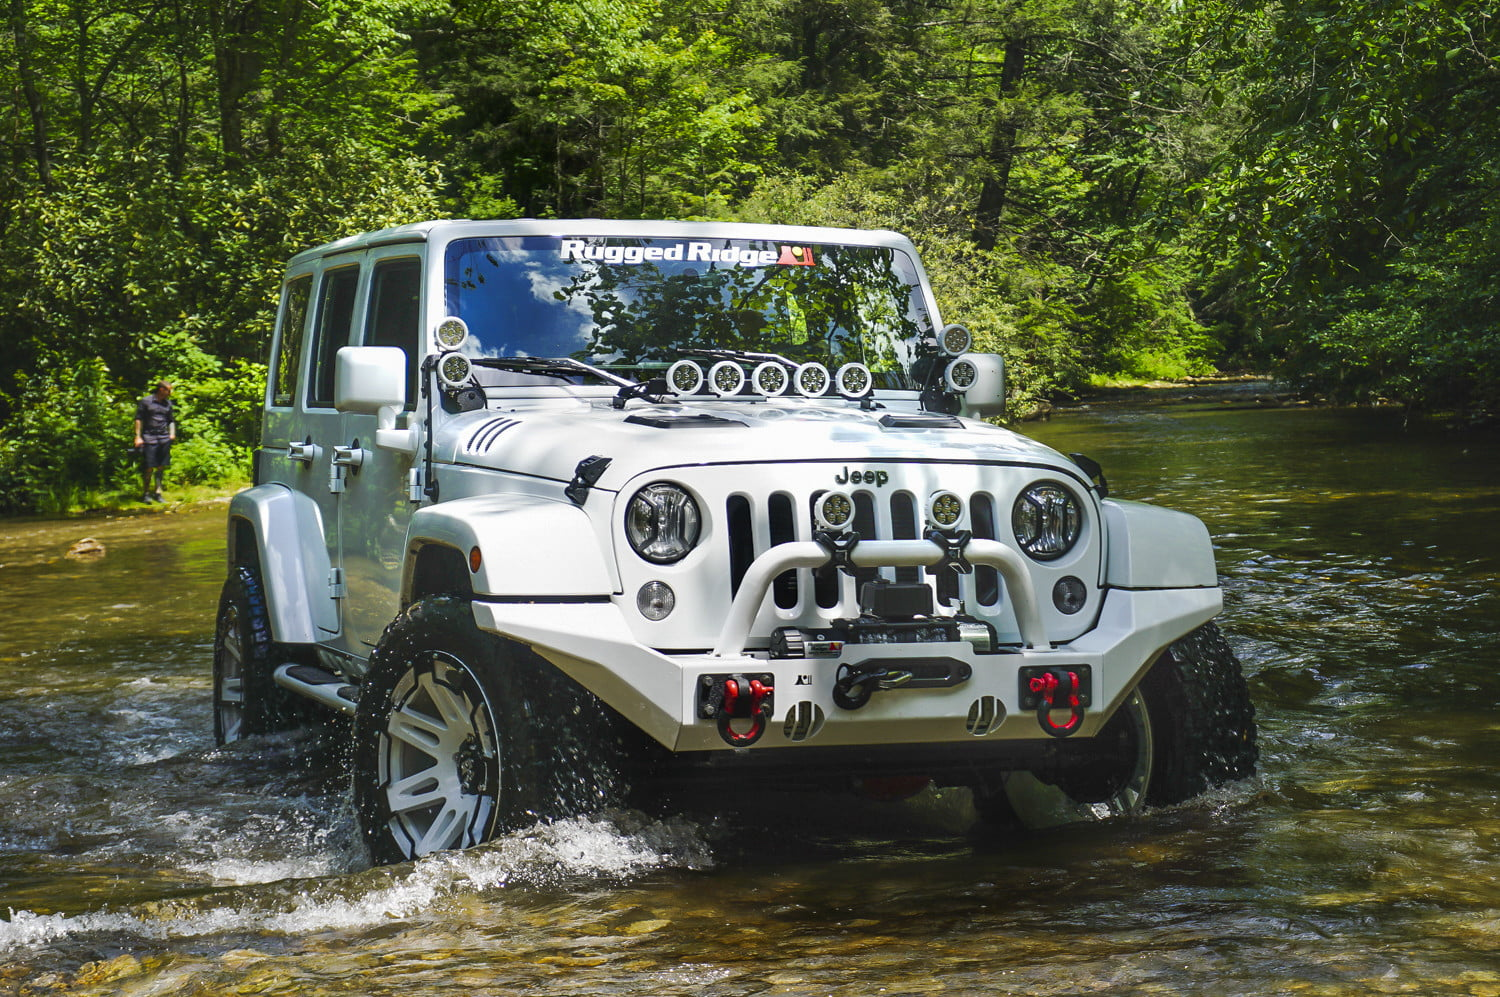 White Jeep Wrangler Unlimited driving through a creekbed